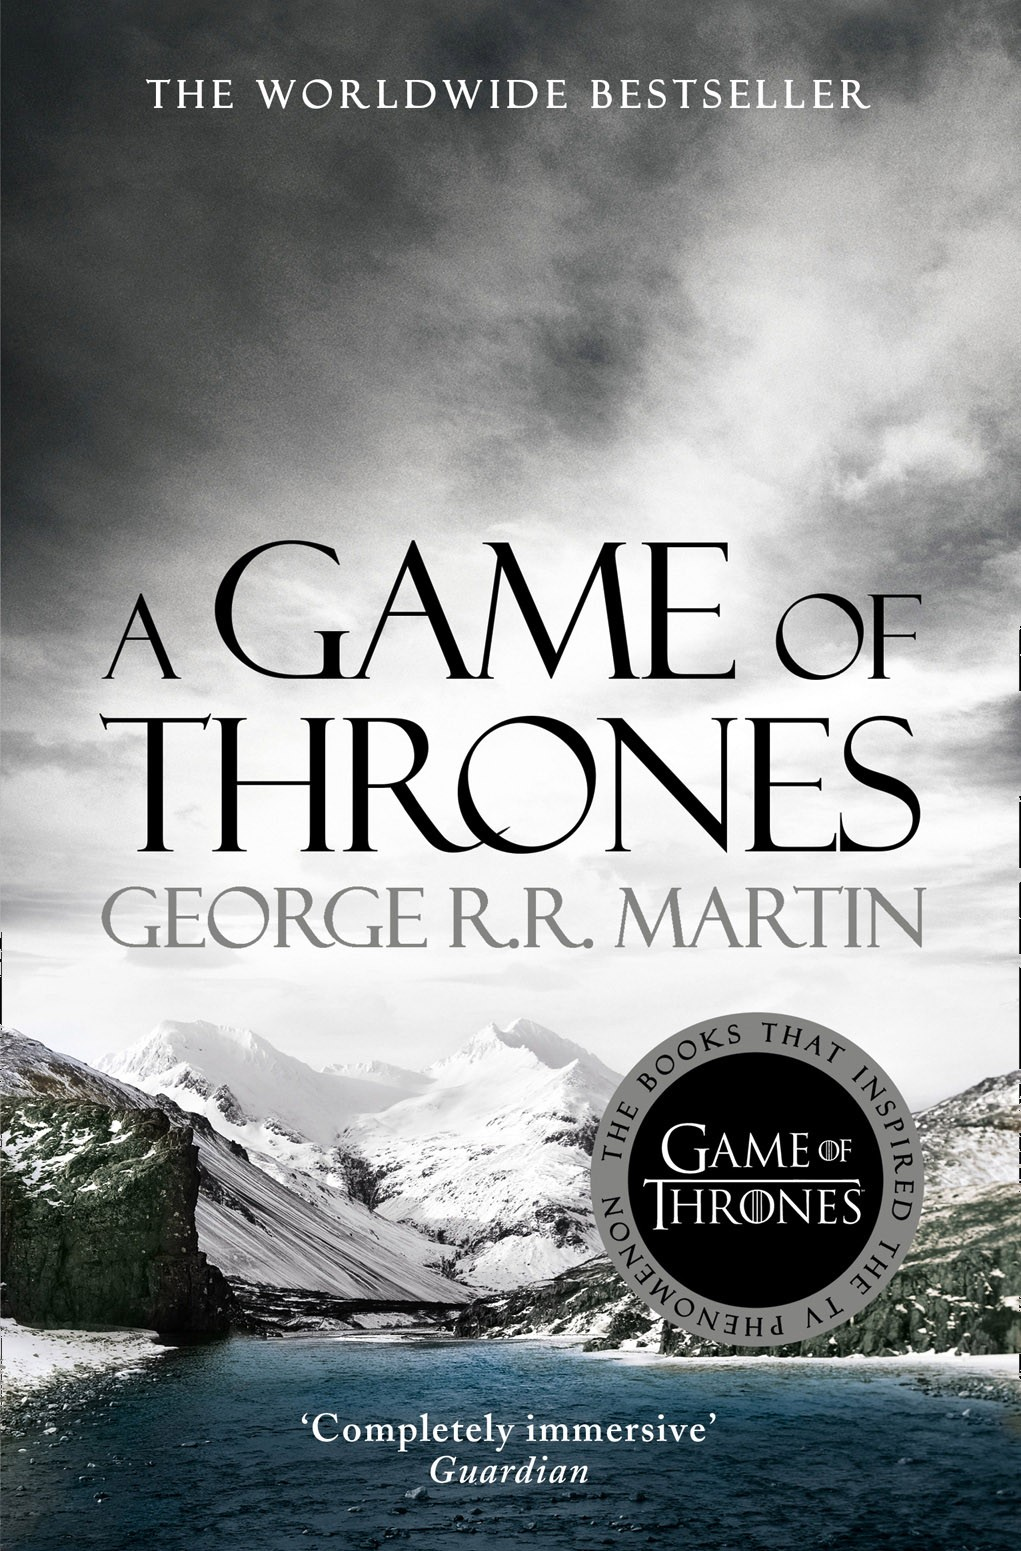 Song of Ice and Fire (1) - a Game of Thrones